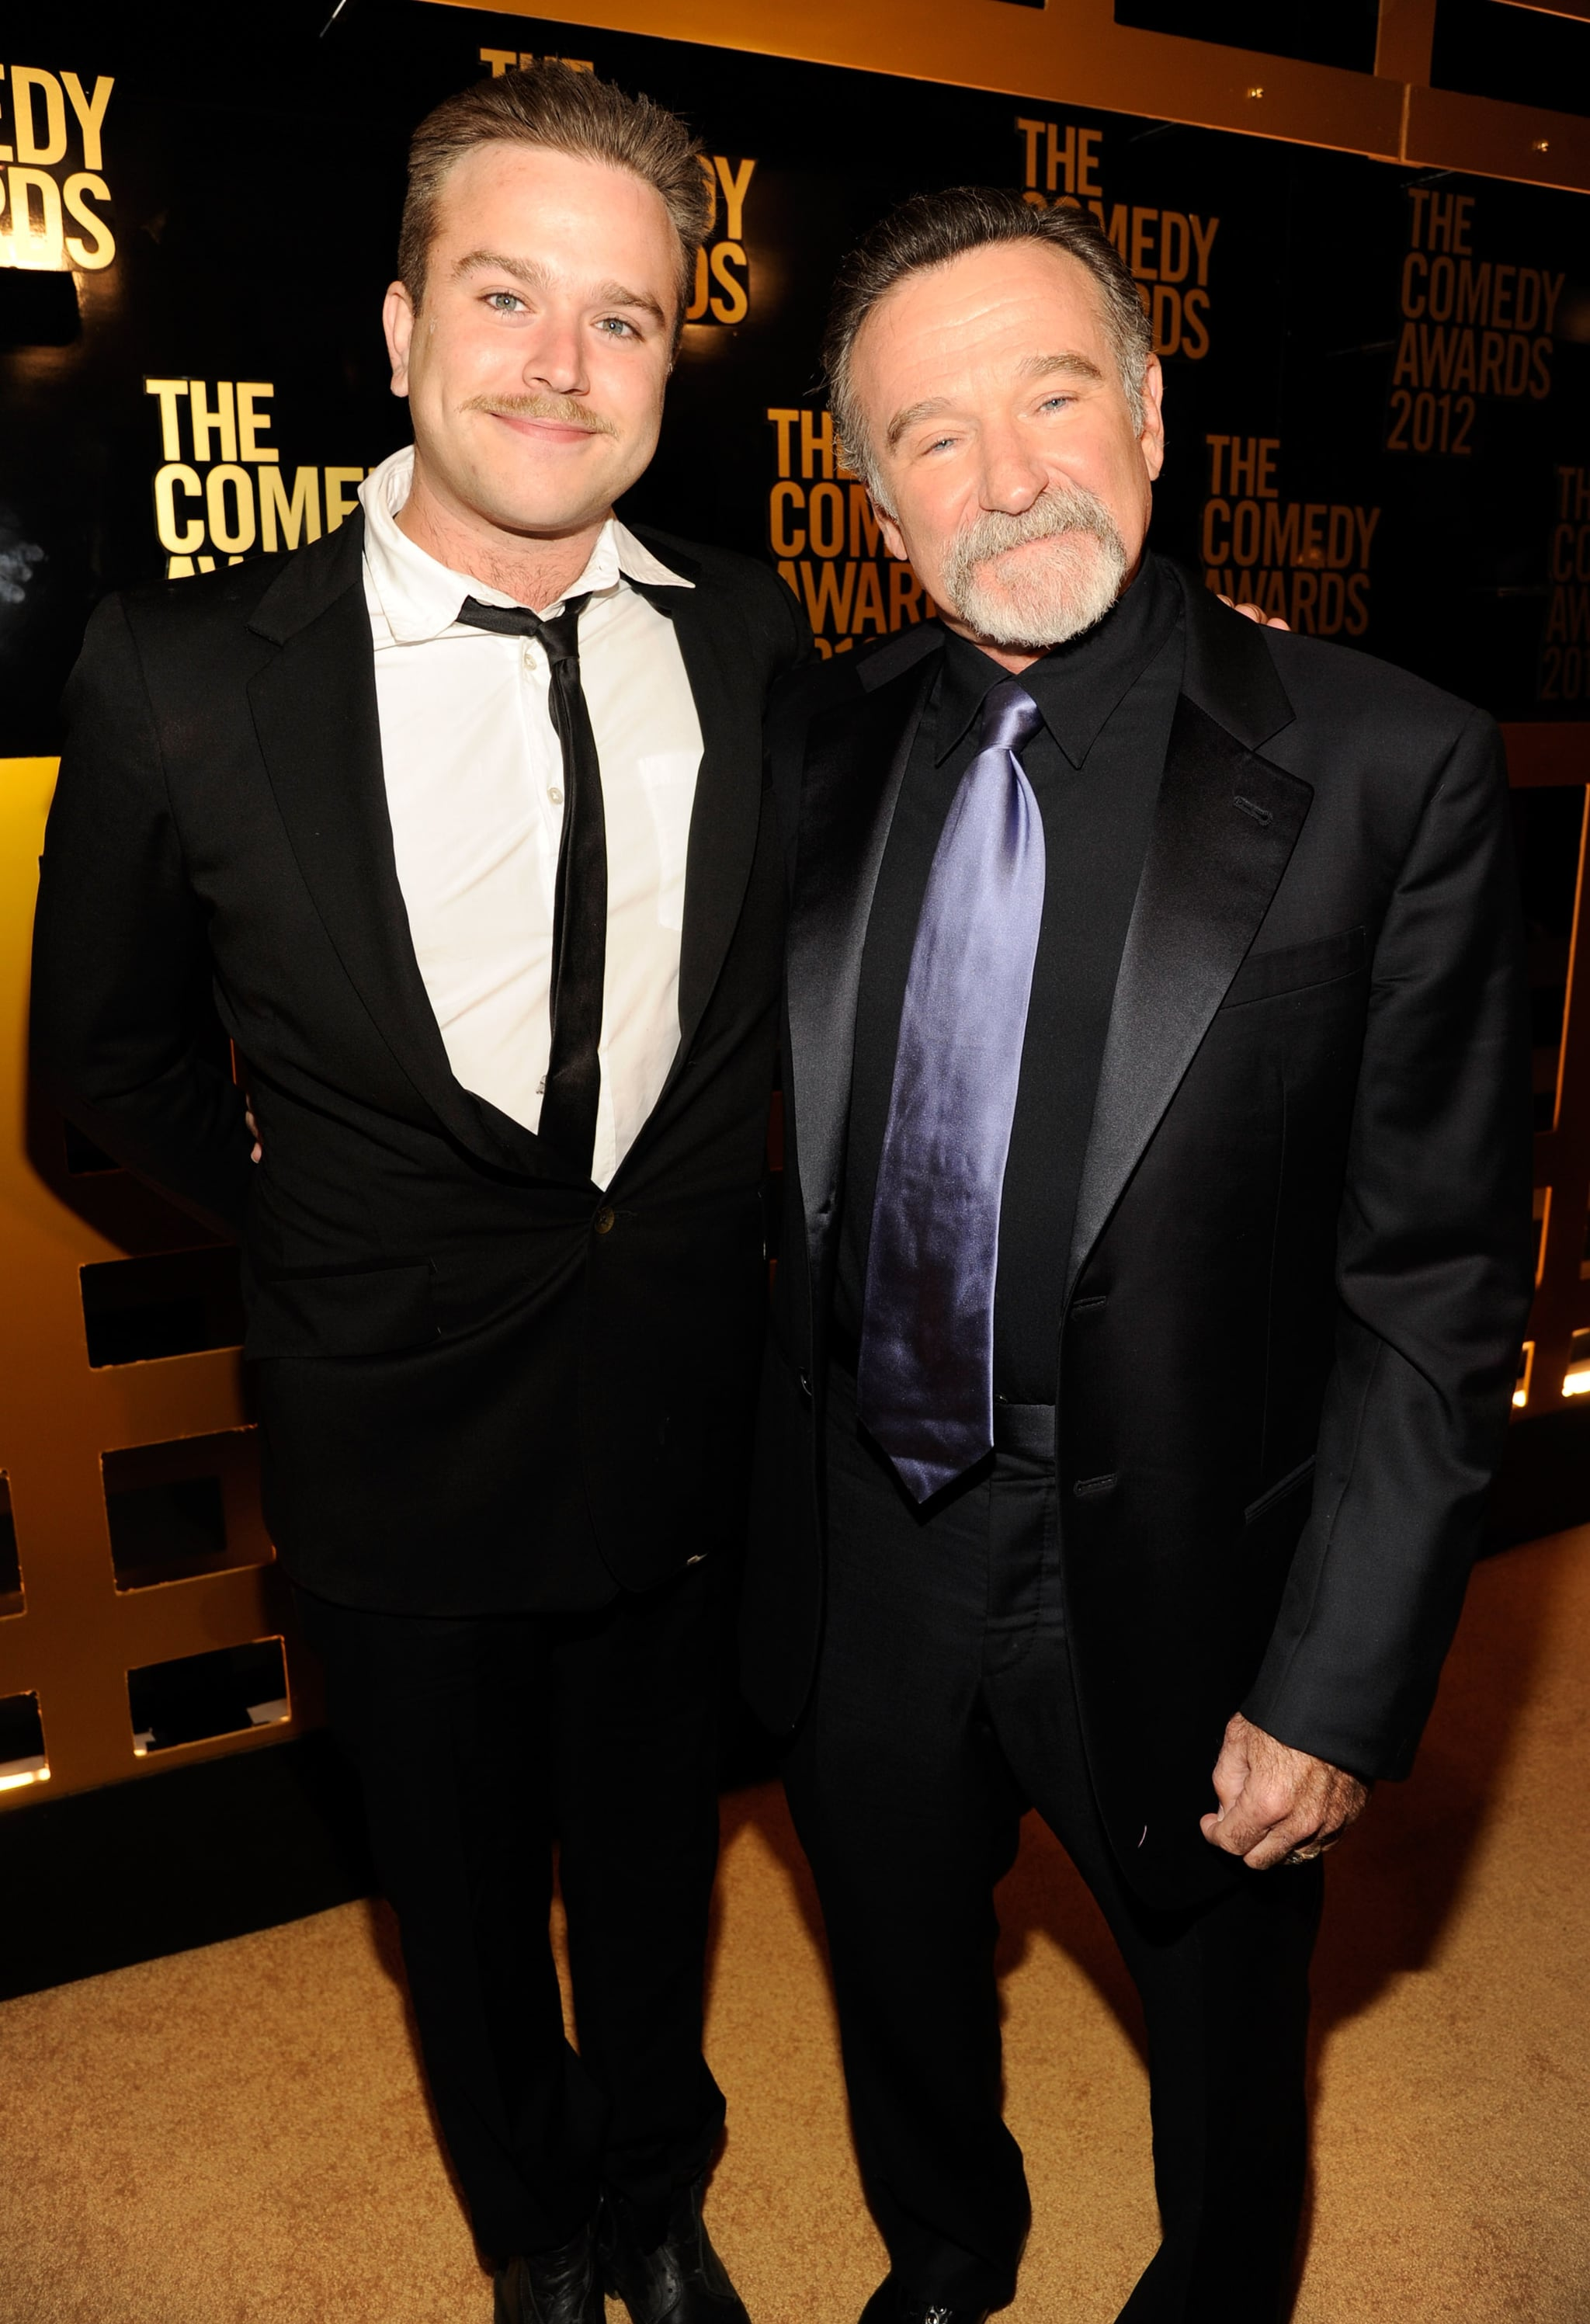 NEW YORK, NY - APRIL 28:  Zachary Pym Williams and Robin Williams attend The Comedy Awards 2012 at Hammerstein Ballroom on April 28, 2012 in New York City.  (Photo by Kevin Mazur/WireImage)